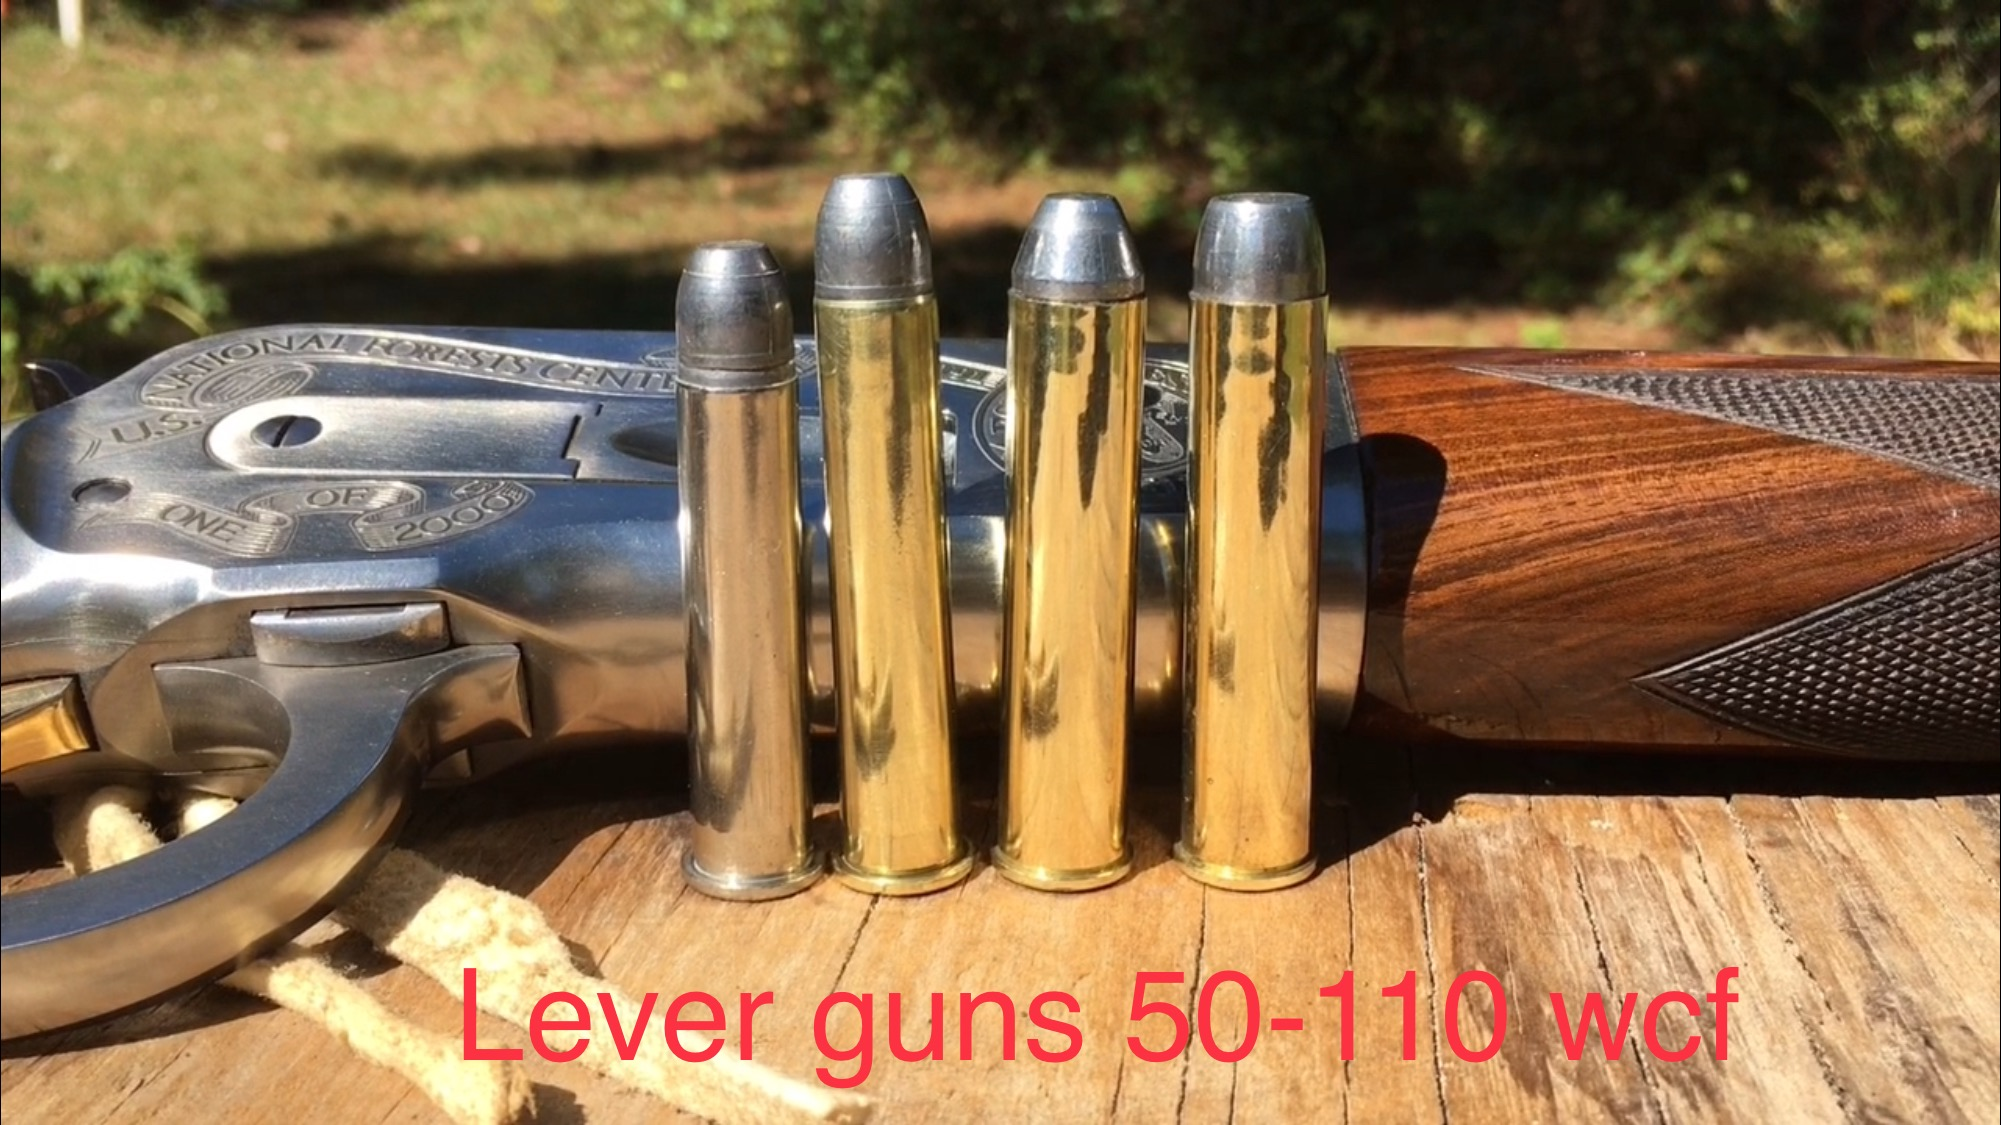 1897 Pump Action versus 1887 Lever Action Shotguns 2